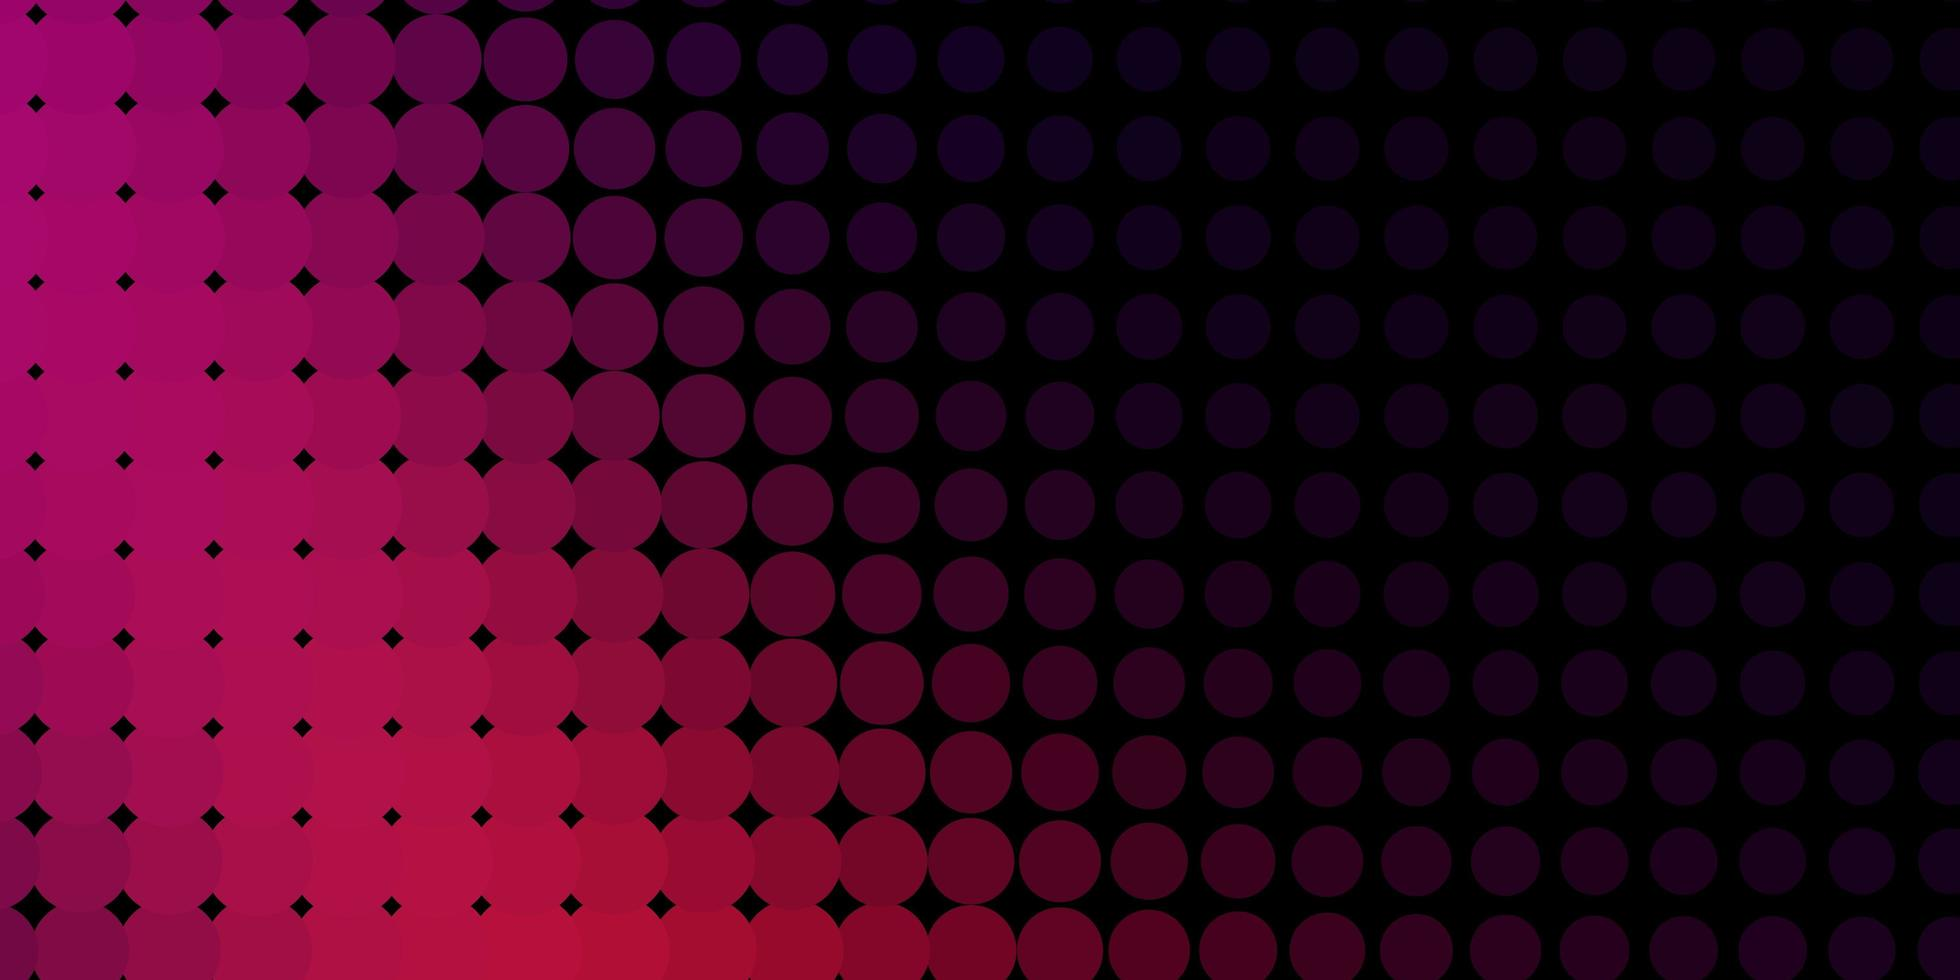 Dark Pink vector background with bubbles.